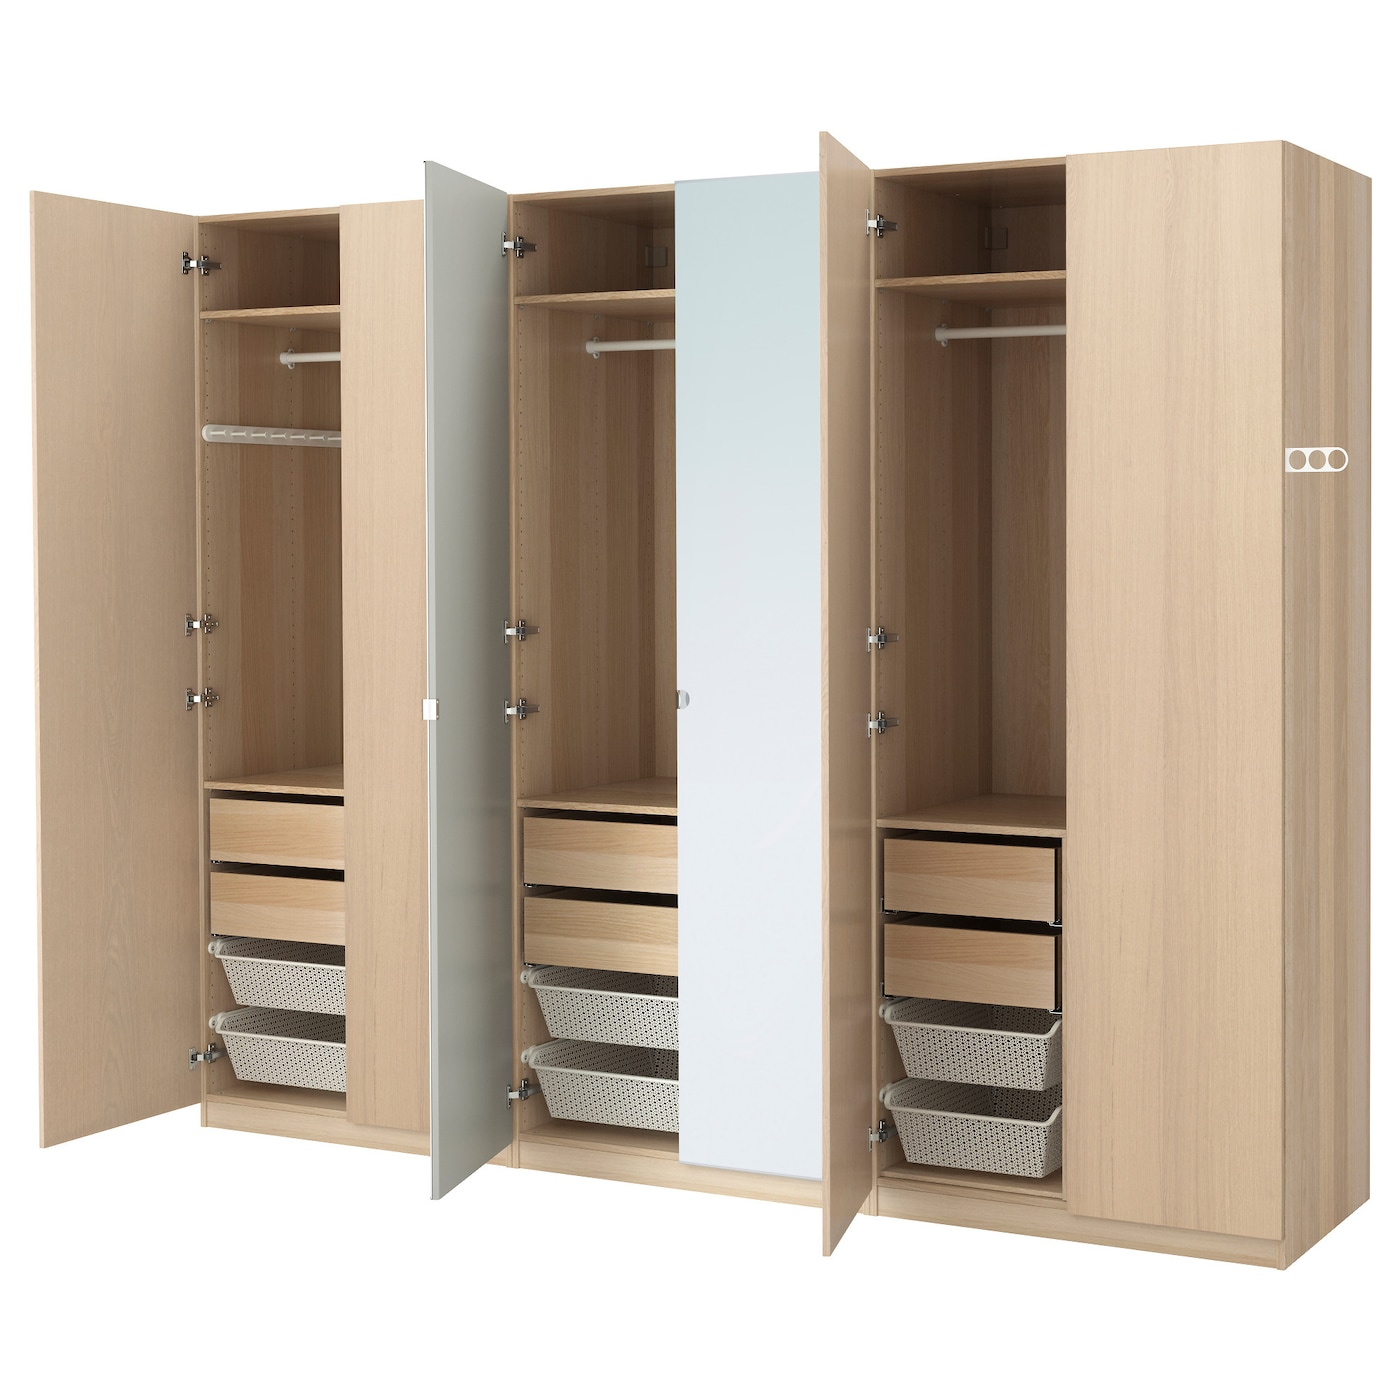 pax wardrobe white stained oak effect nexus vikedal